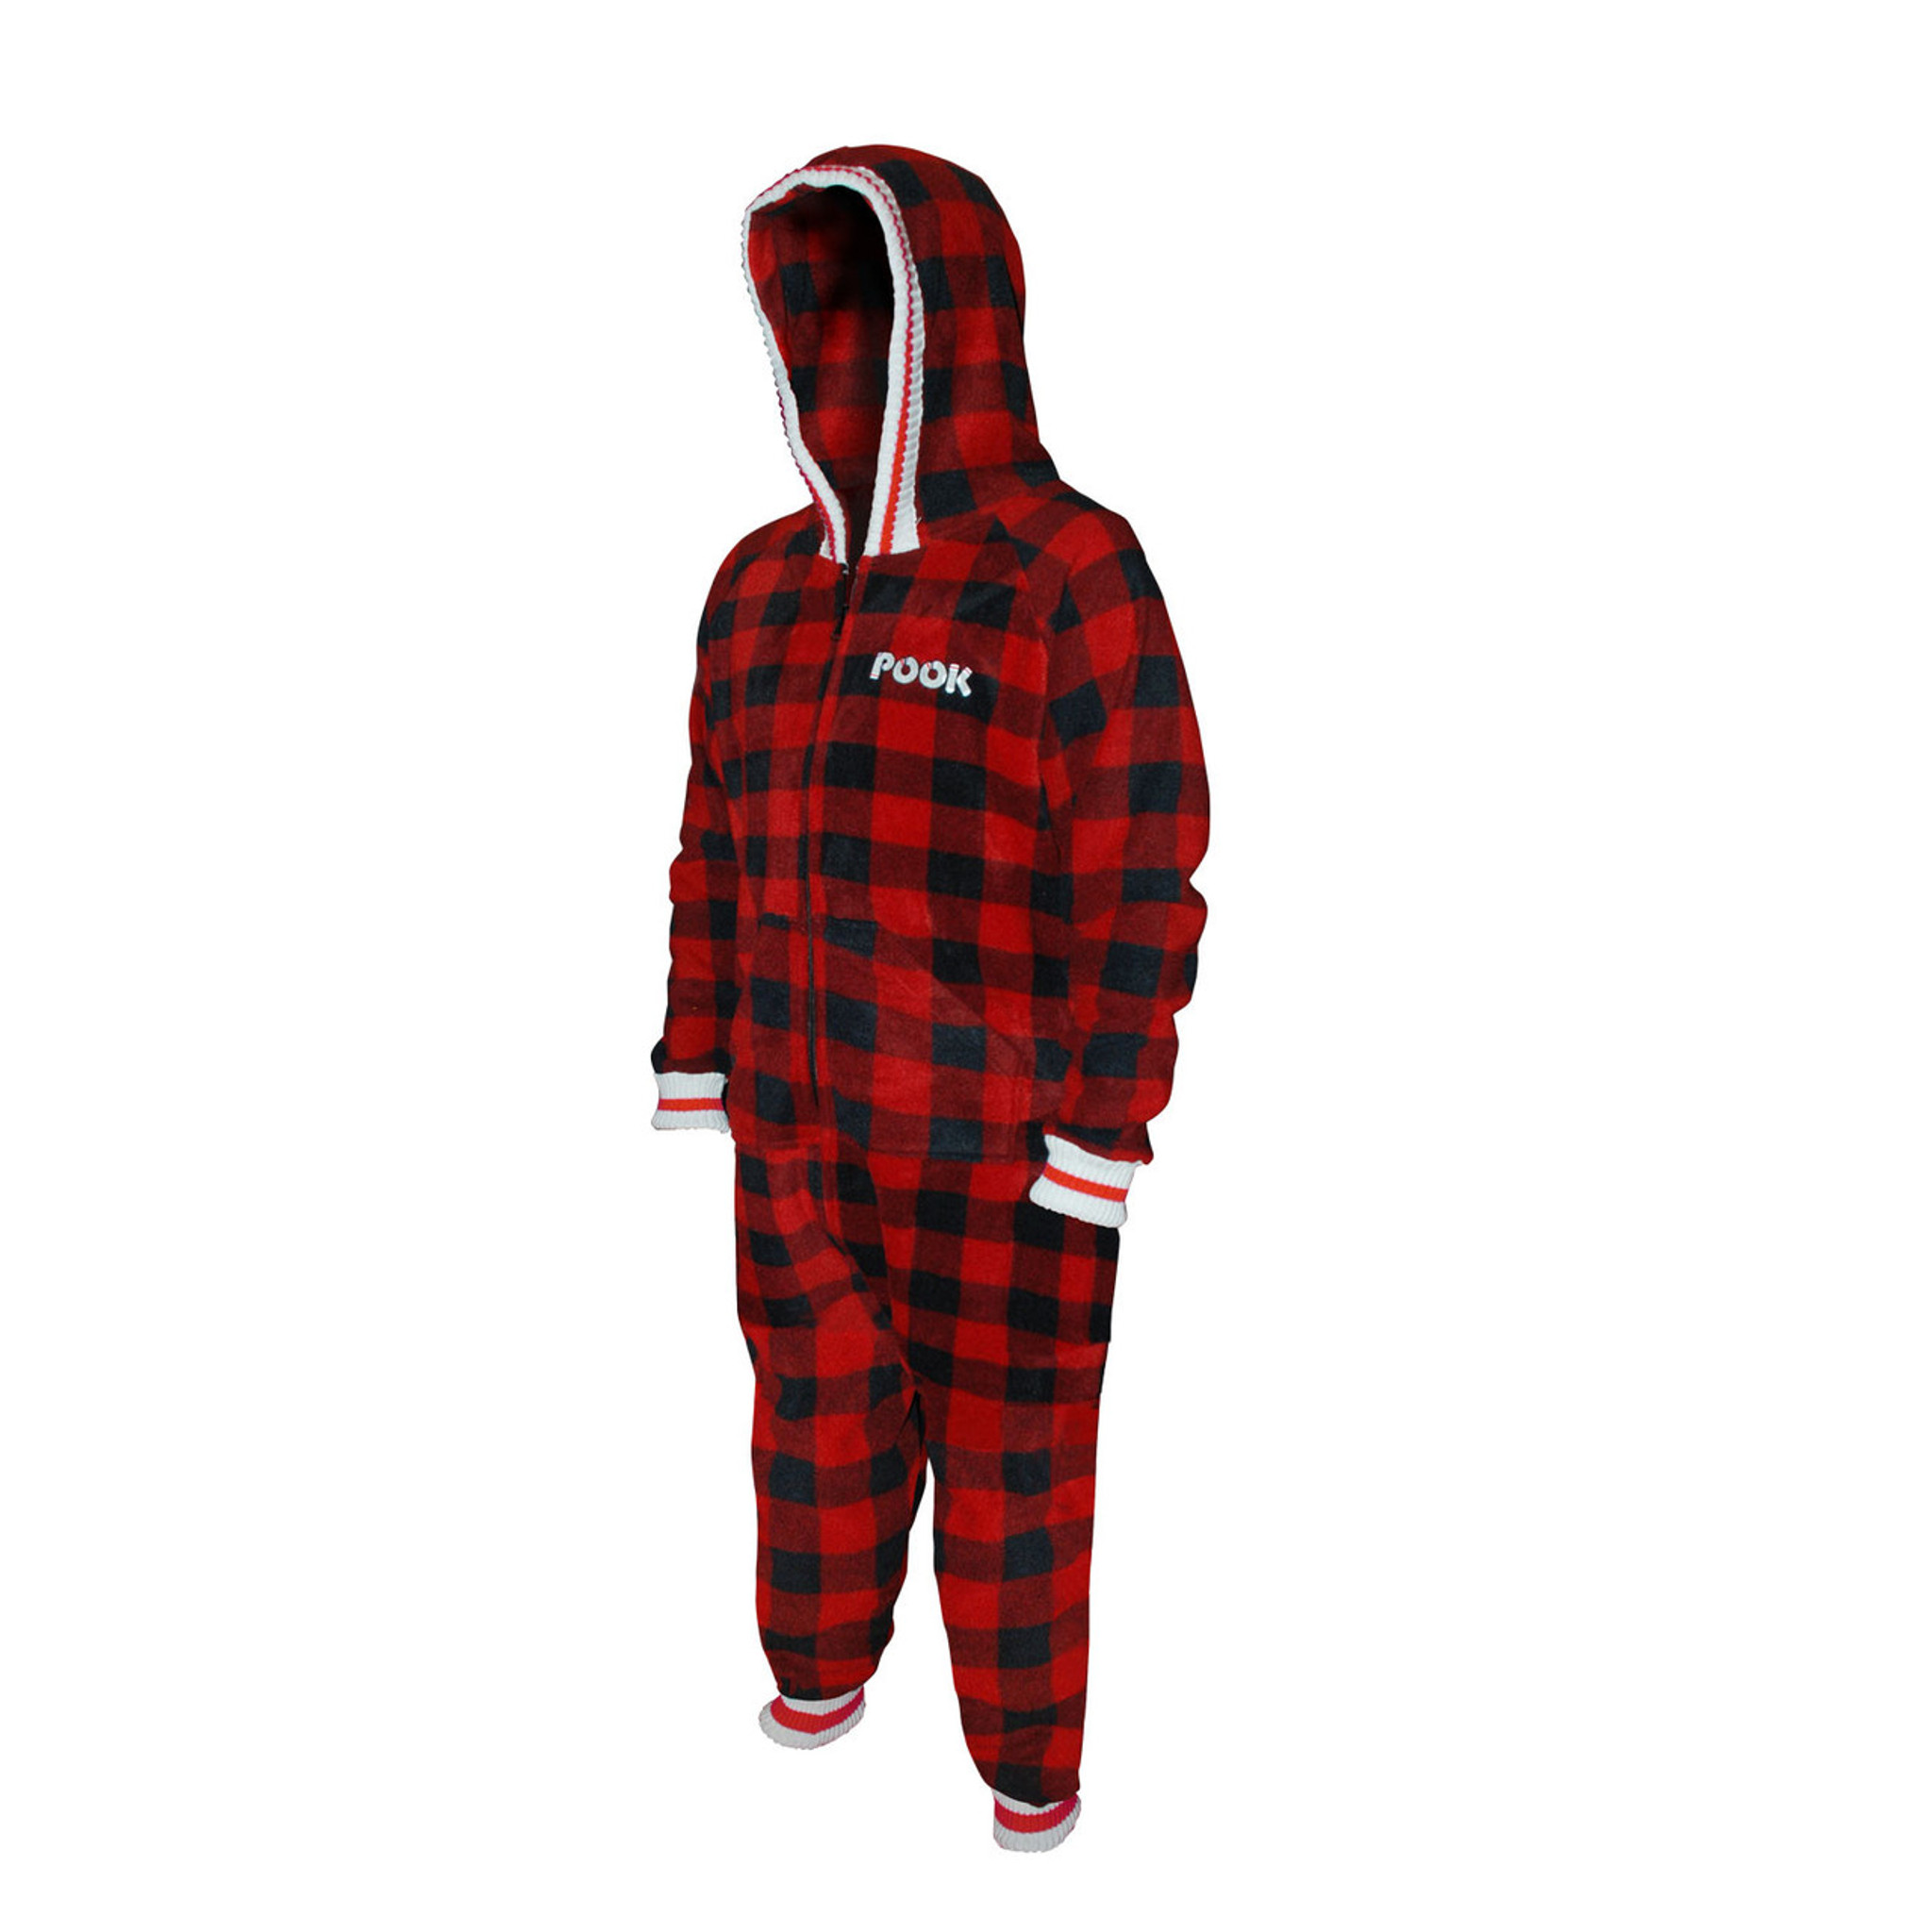 4c1da431719e ... Onesie   Onezy (Adult Red Plaid) by Pook ...